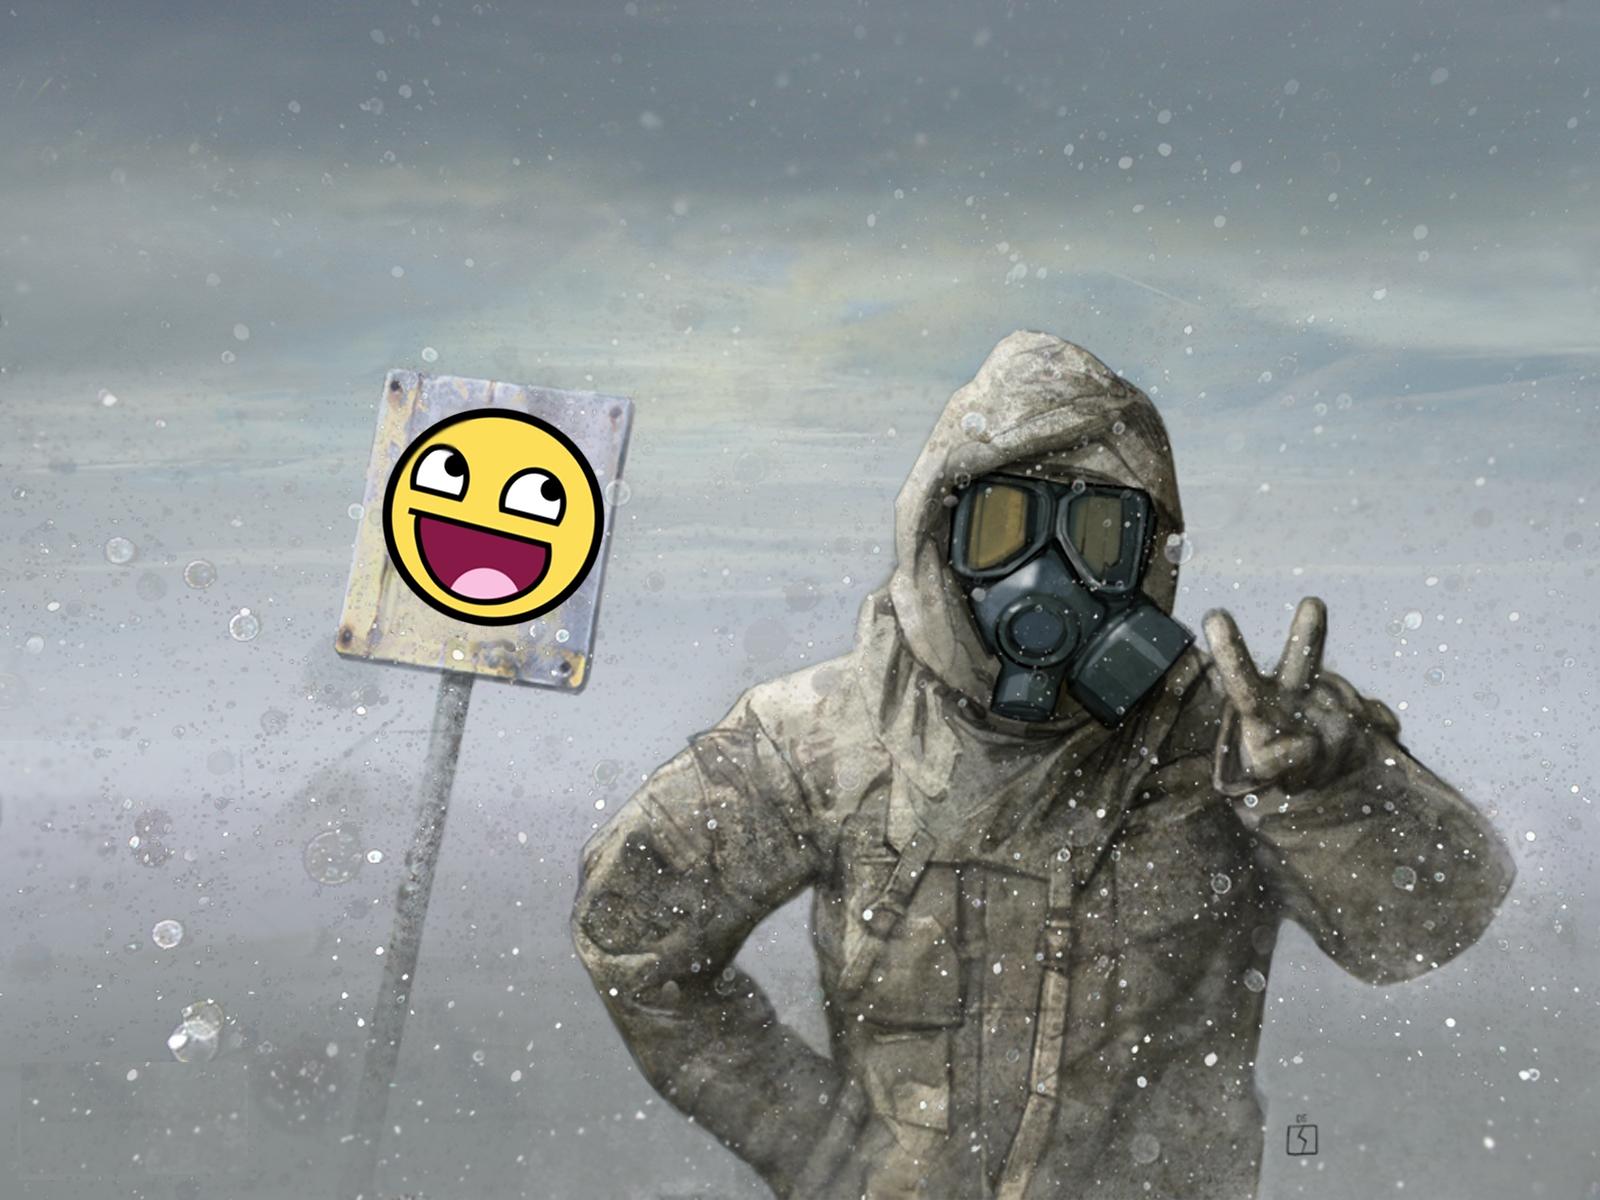 S.T.A.L.K.E.R. Awesome Face HD Wallpaper